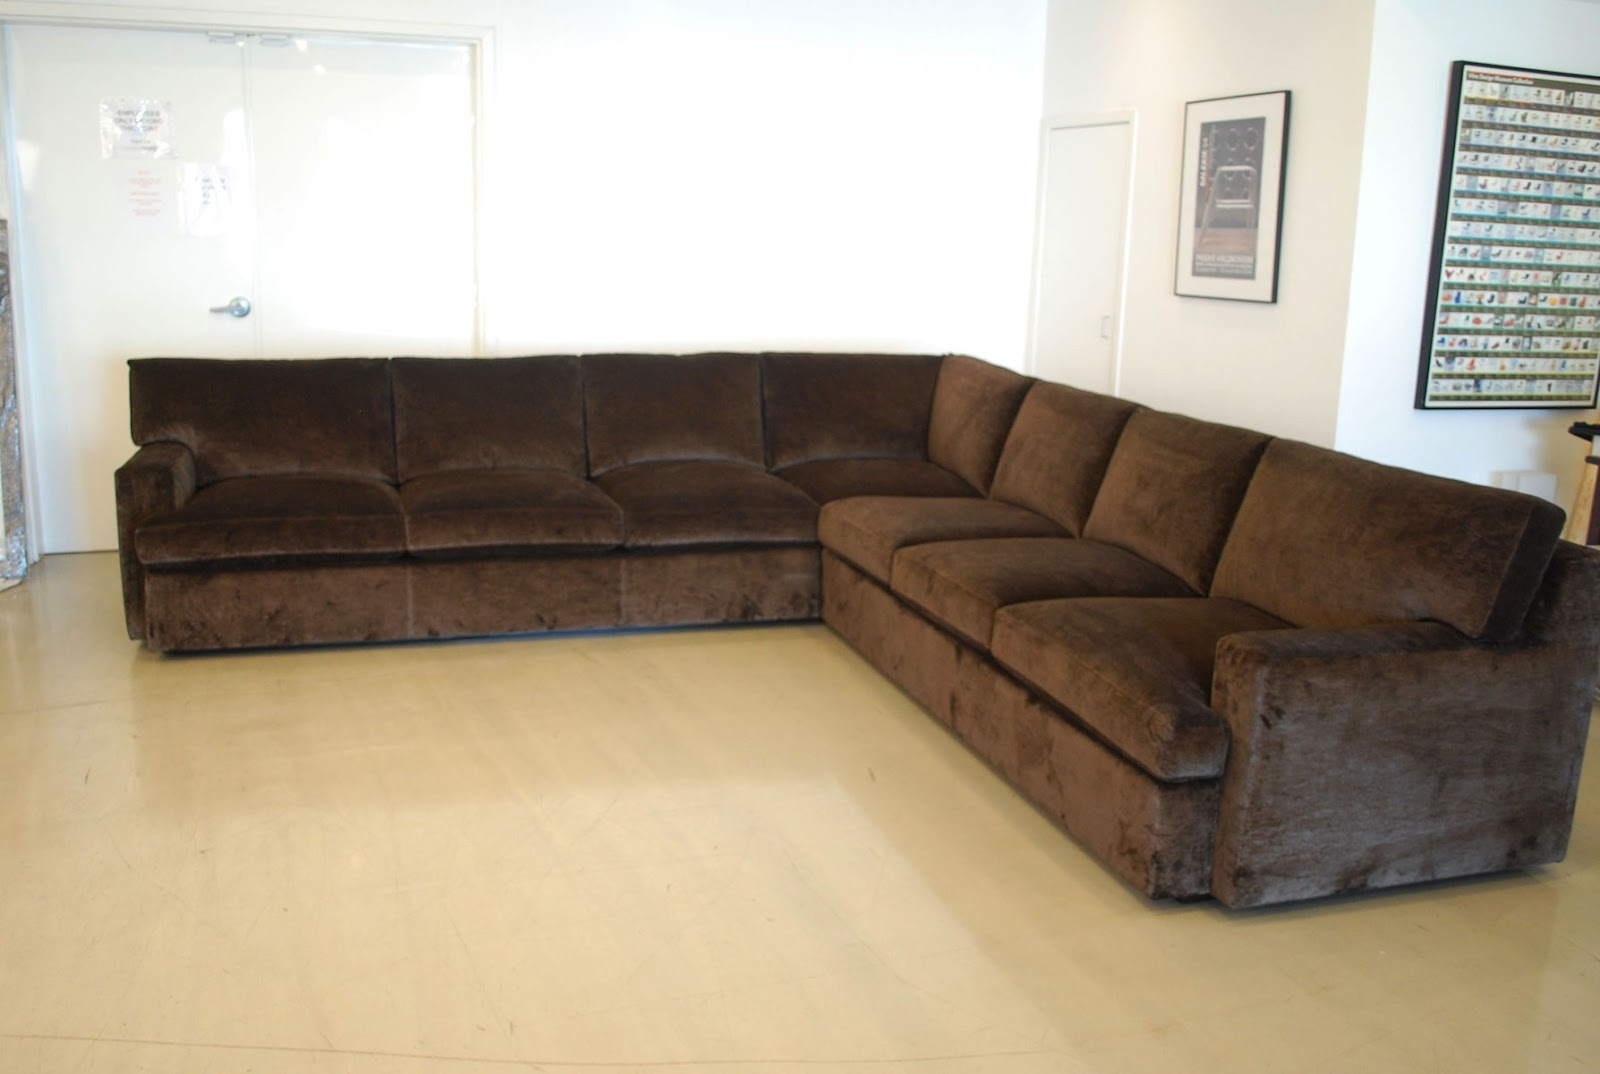 Custom Made Sectional Sofas Cleanupflorida Throughout Custom Made Sectional Sofas (#2 of 12)